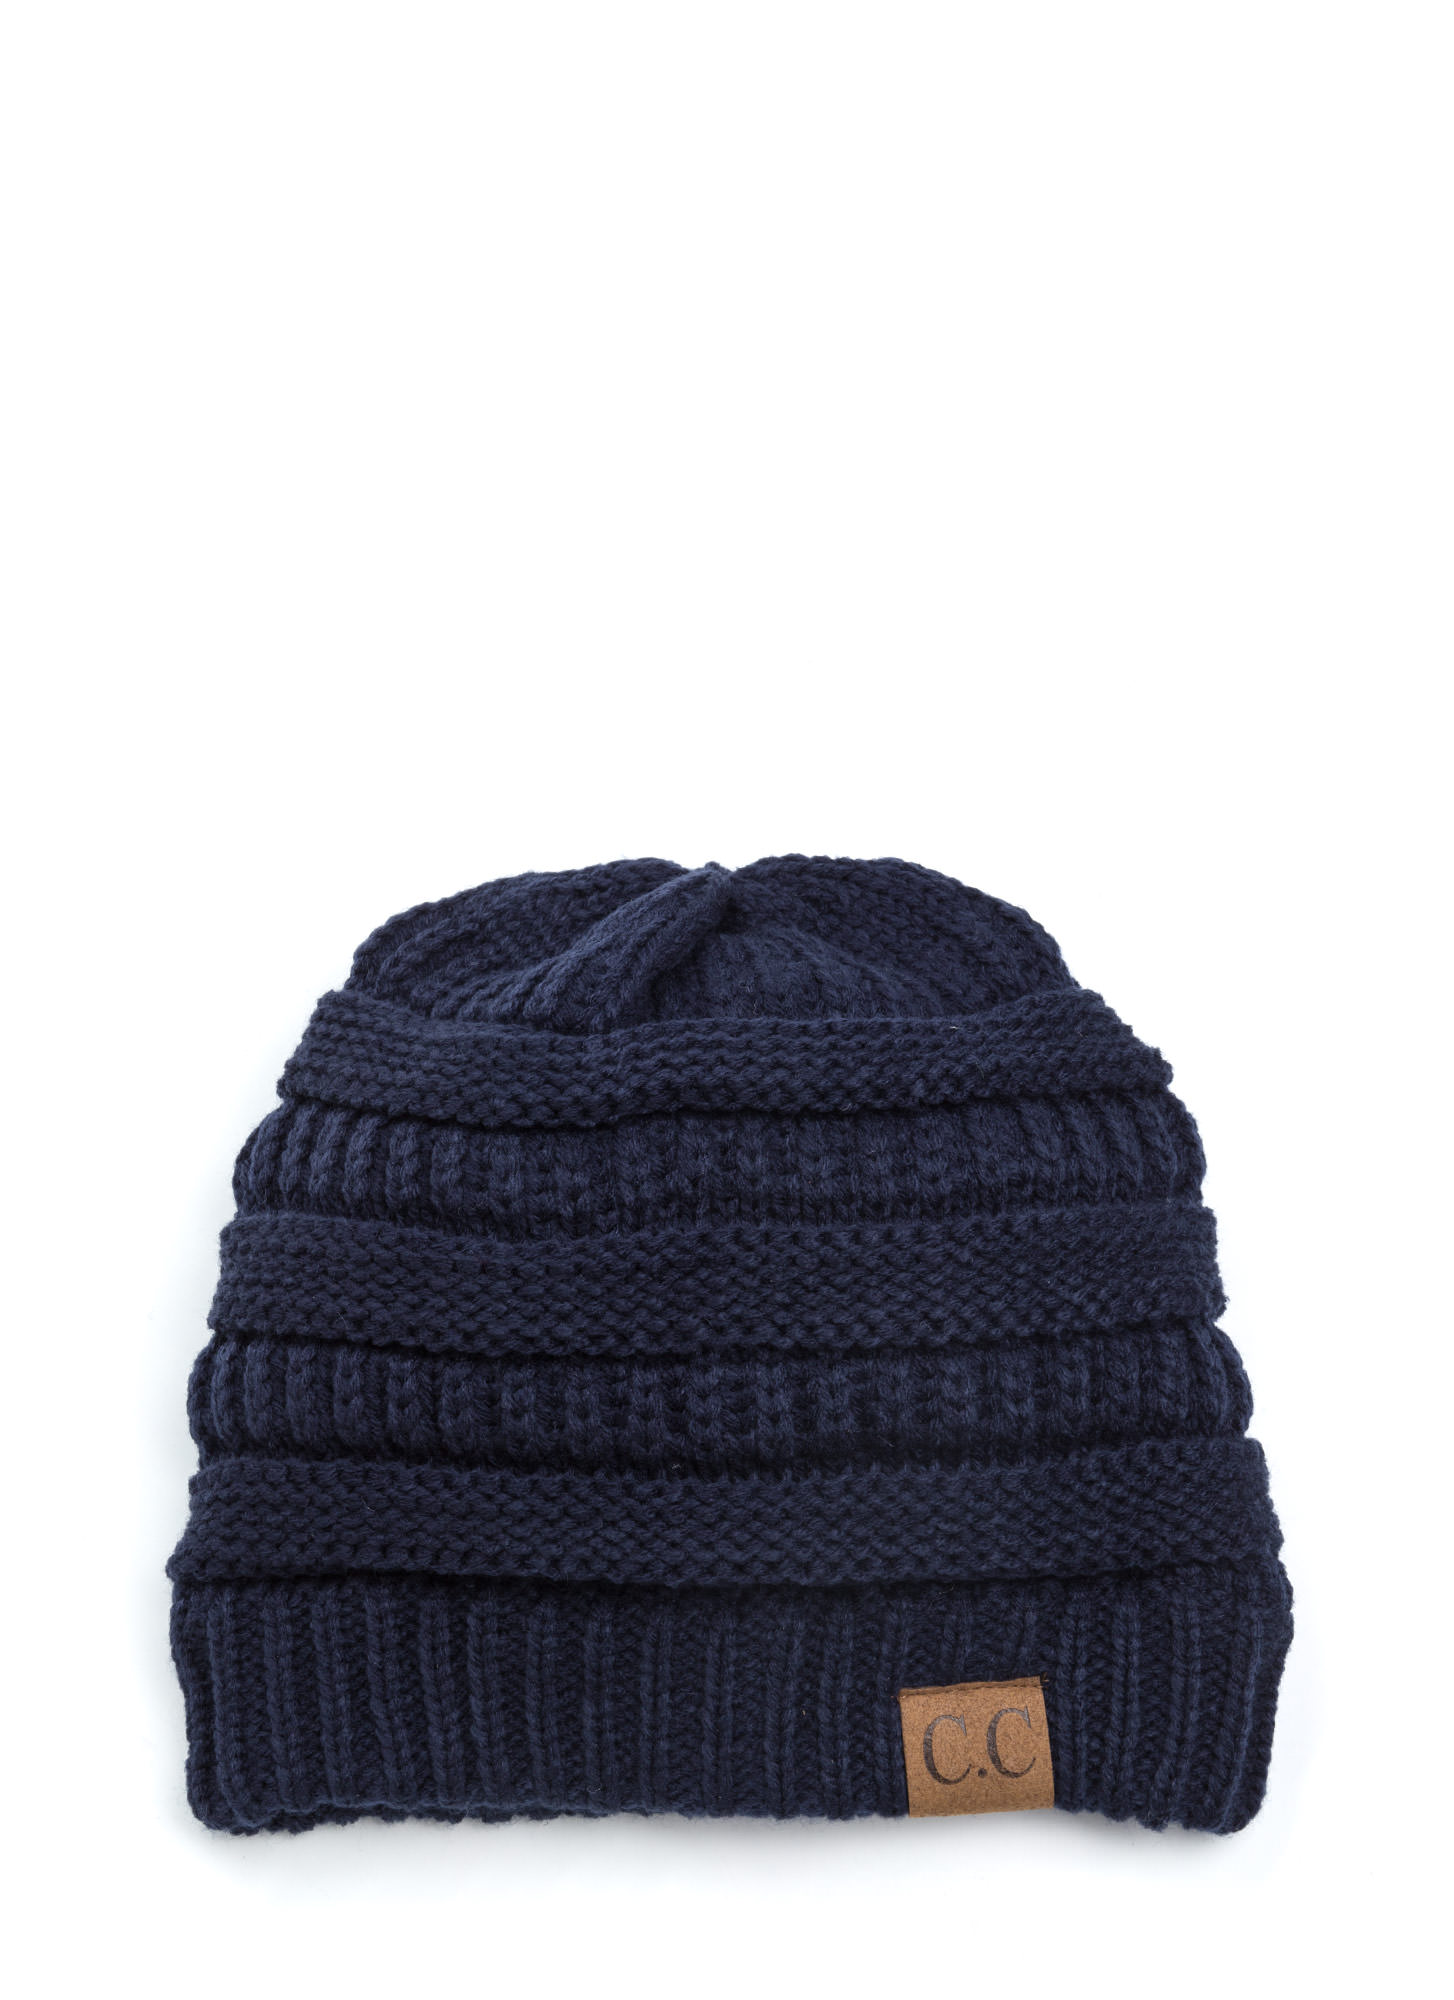 CC Cable Knit Beanie NAVY